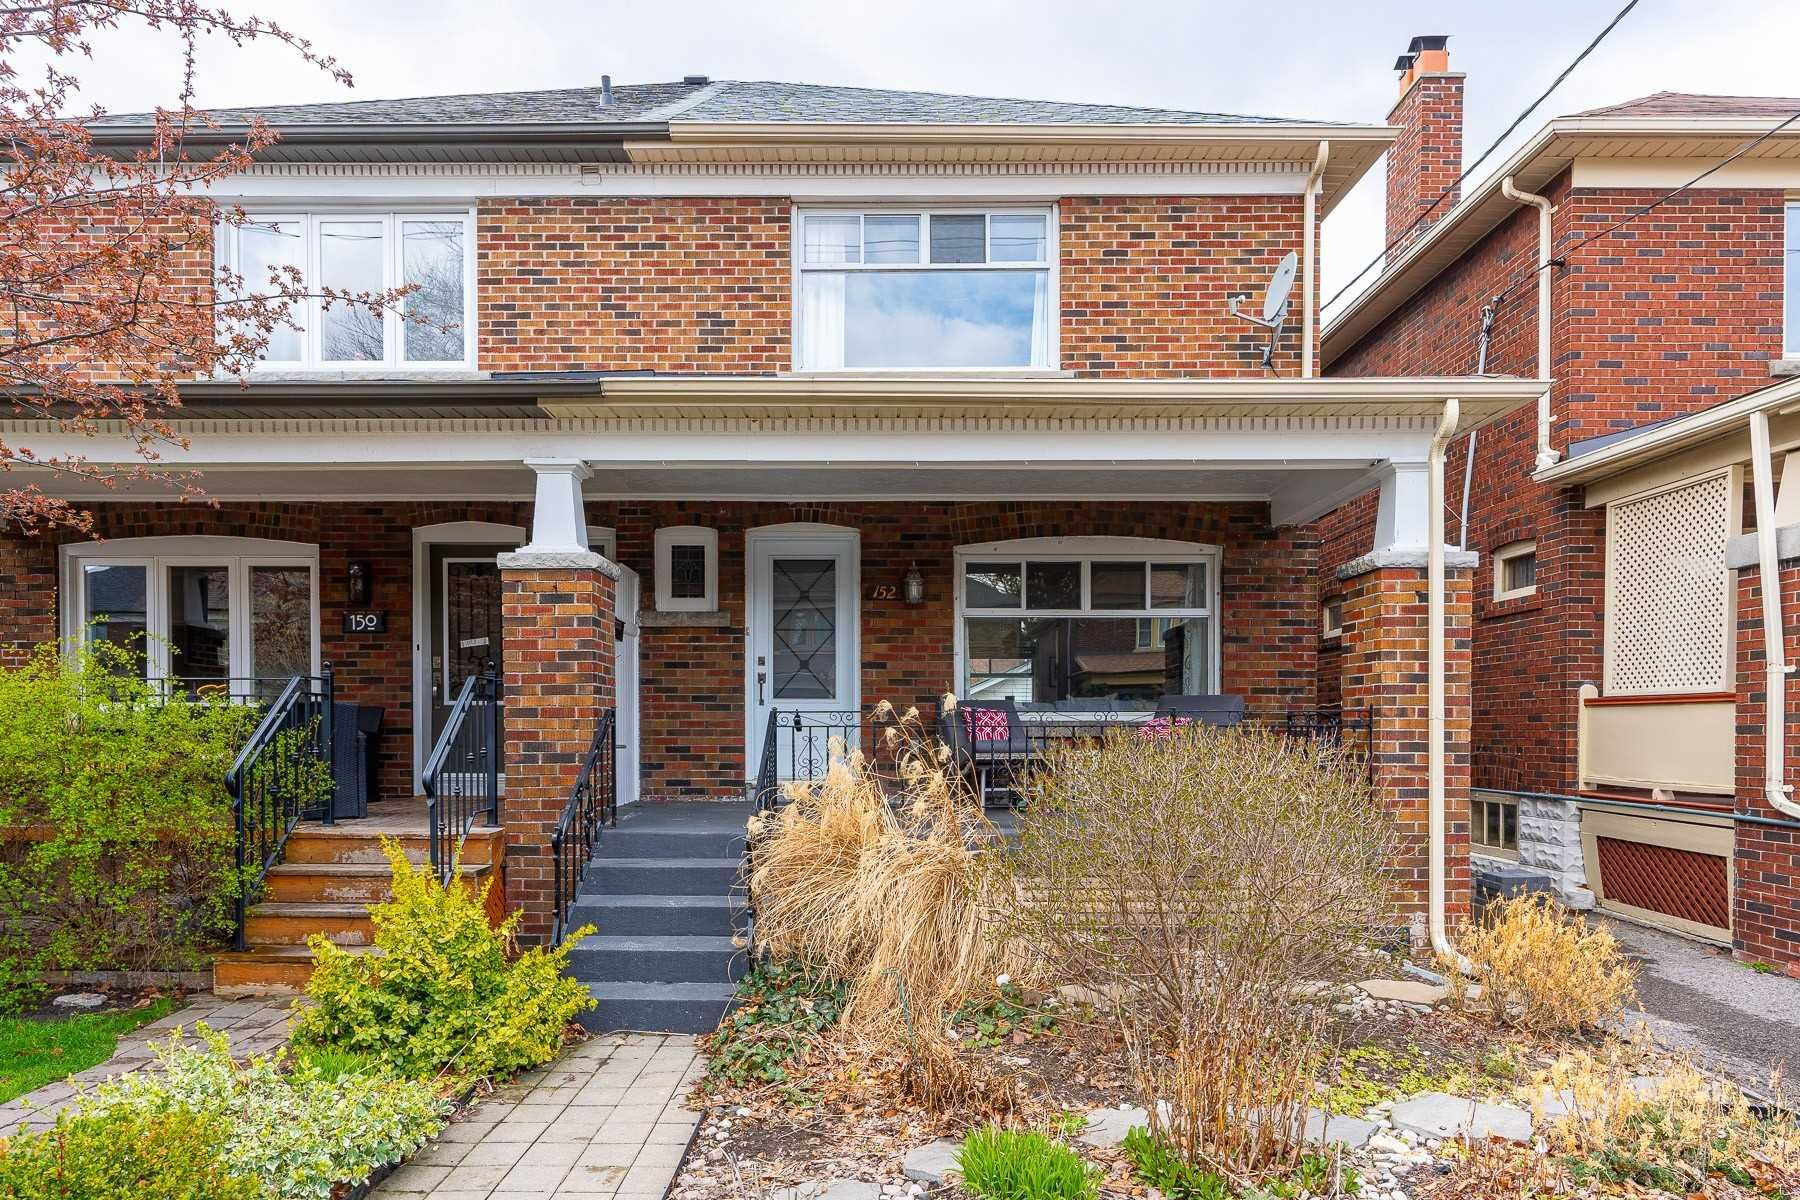 Main Photo: 152 Linsmore Crescent in Toronto: Danforth Village-East York House (2-Storey) for sale (Toronto E03)  : MLS®# E5210434